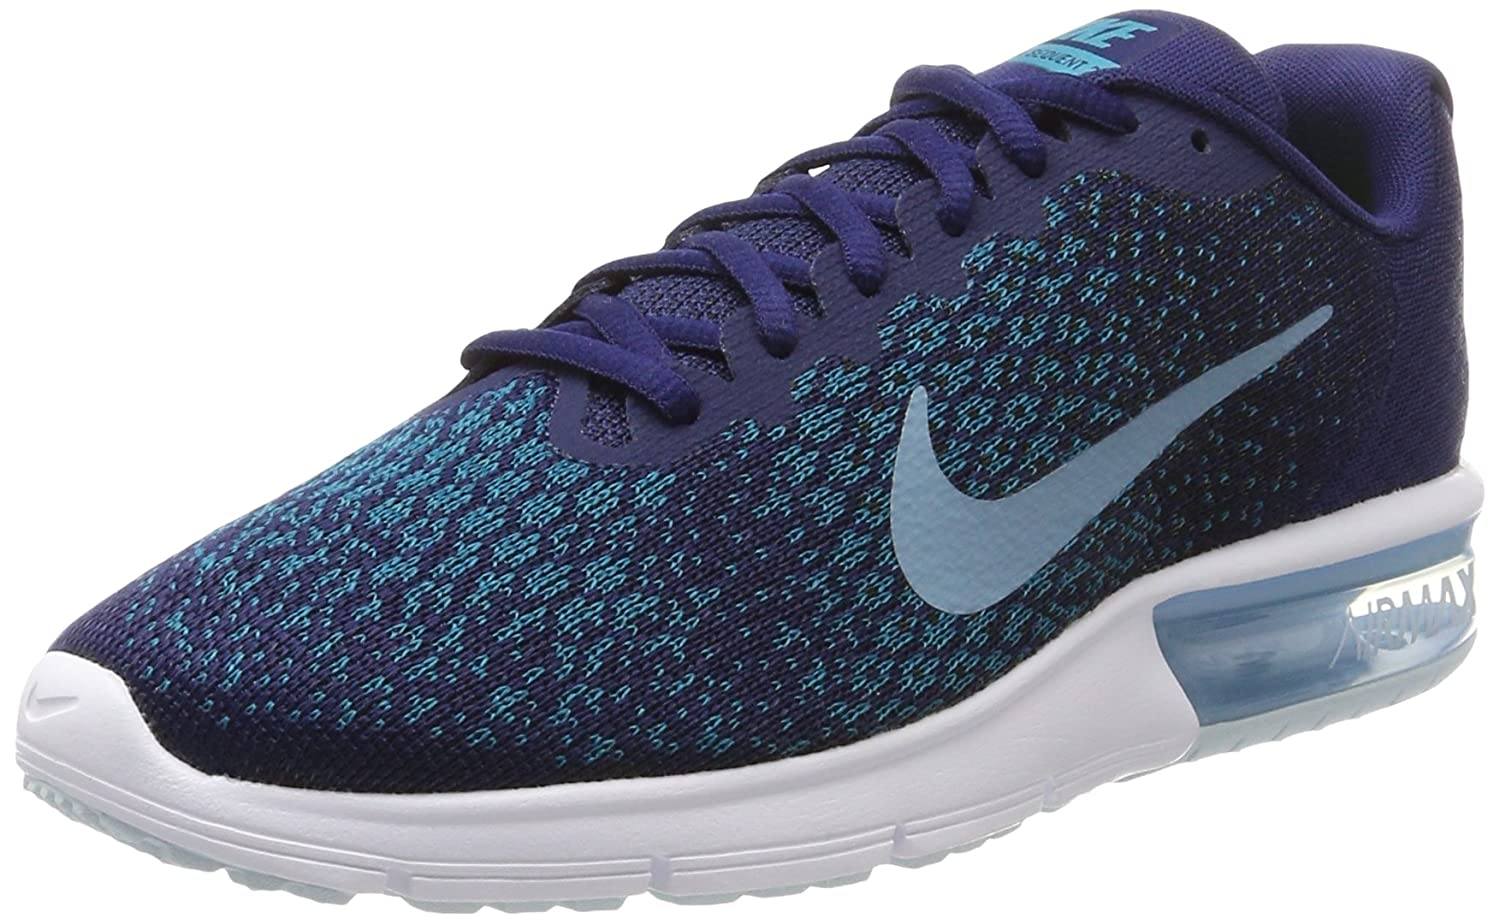 NIKE Men's Air Max Sequent 2 Running Shoe B01M7YGFRQ 10.5 D(M) US|Binary Blue/Cerulean/Black/Blustery